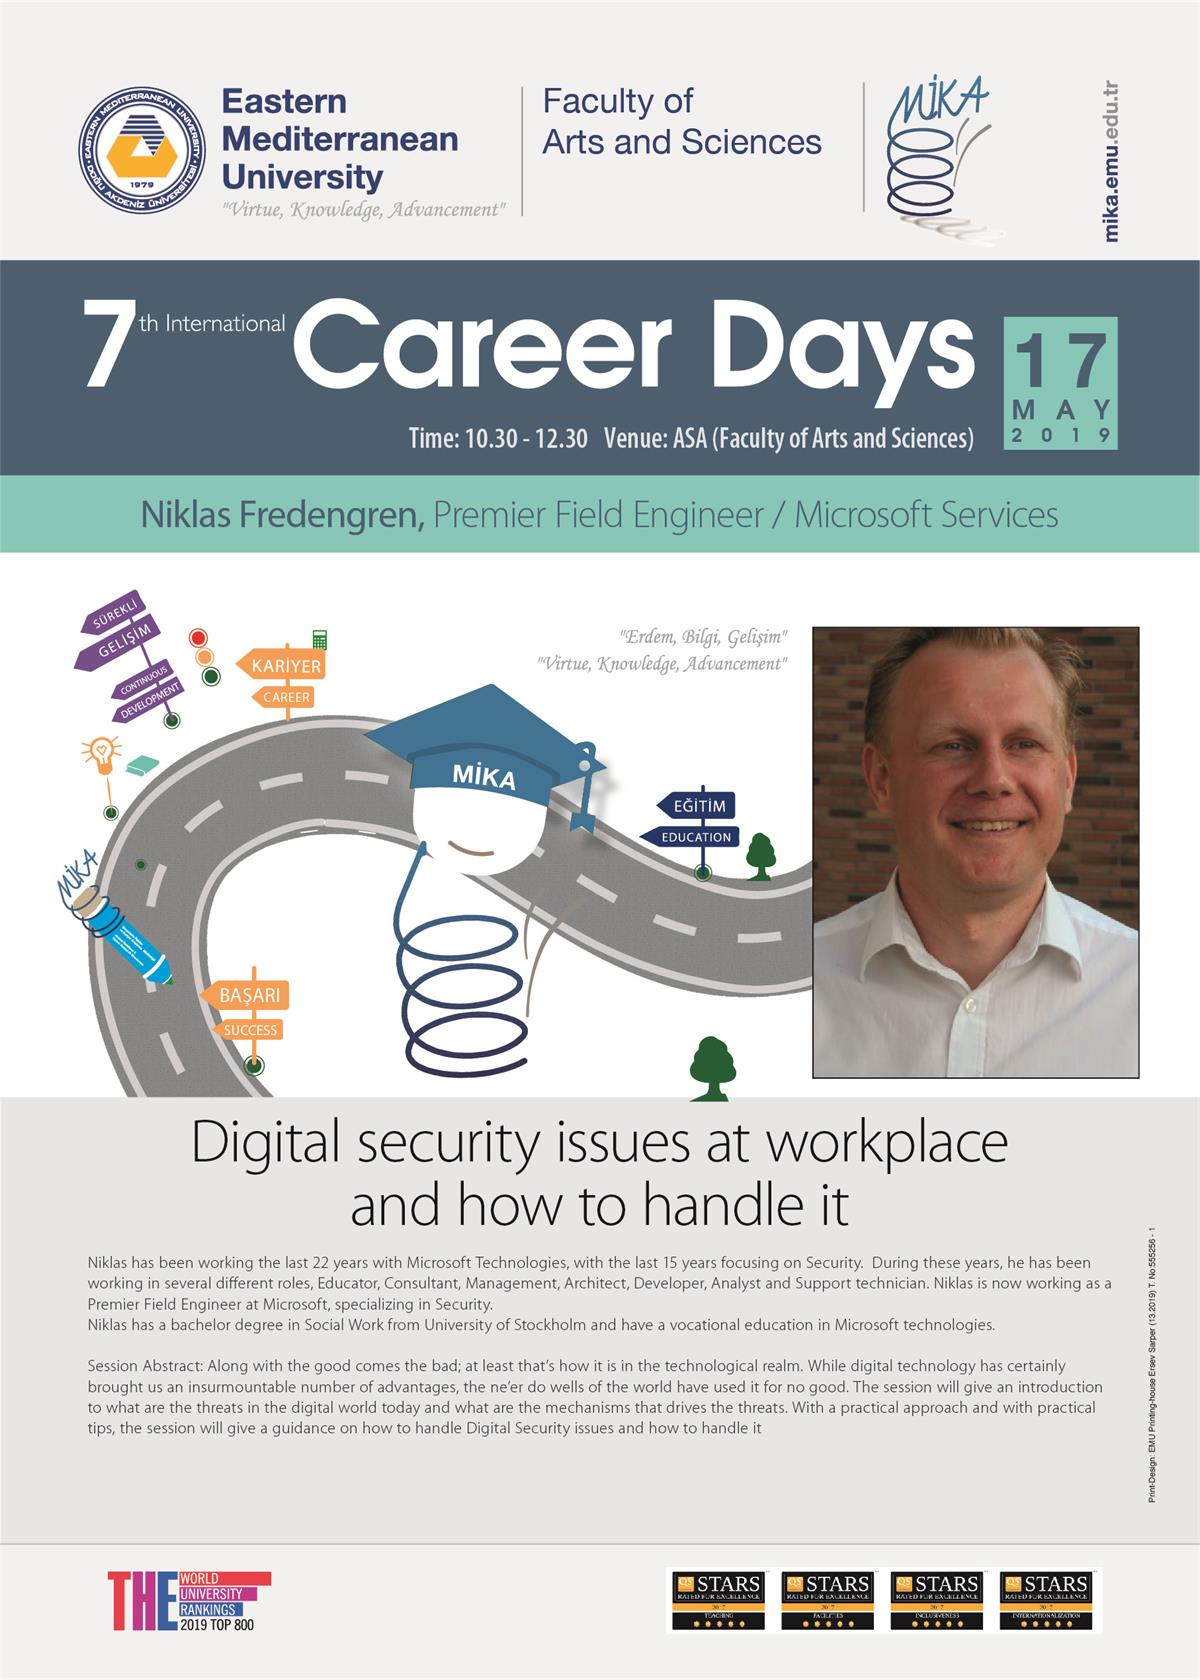 Niklas Fredengren, Premier Field Engineer / Microsoft Services. Digital security issues at workplace and how to handle it.